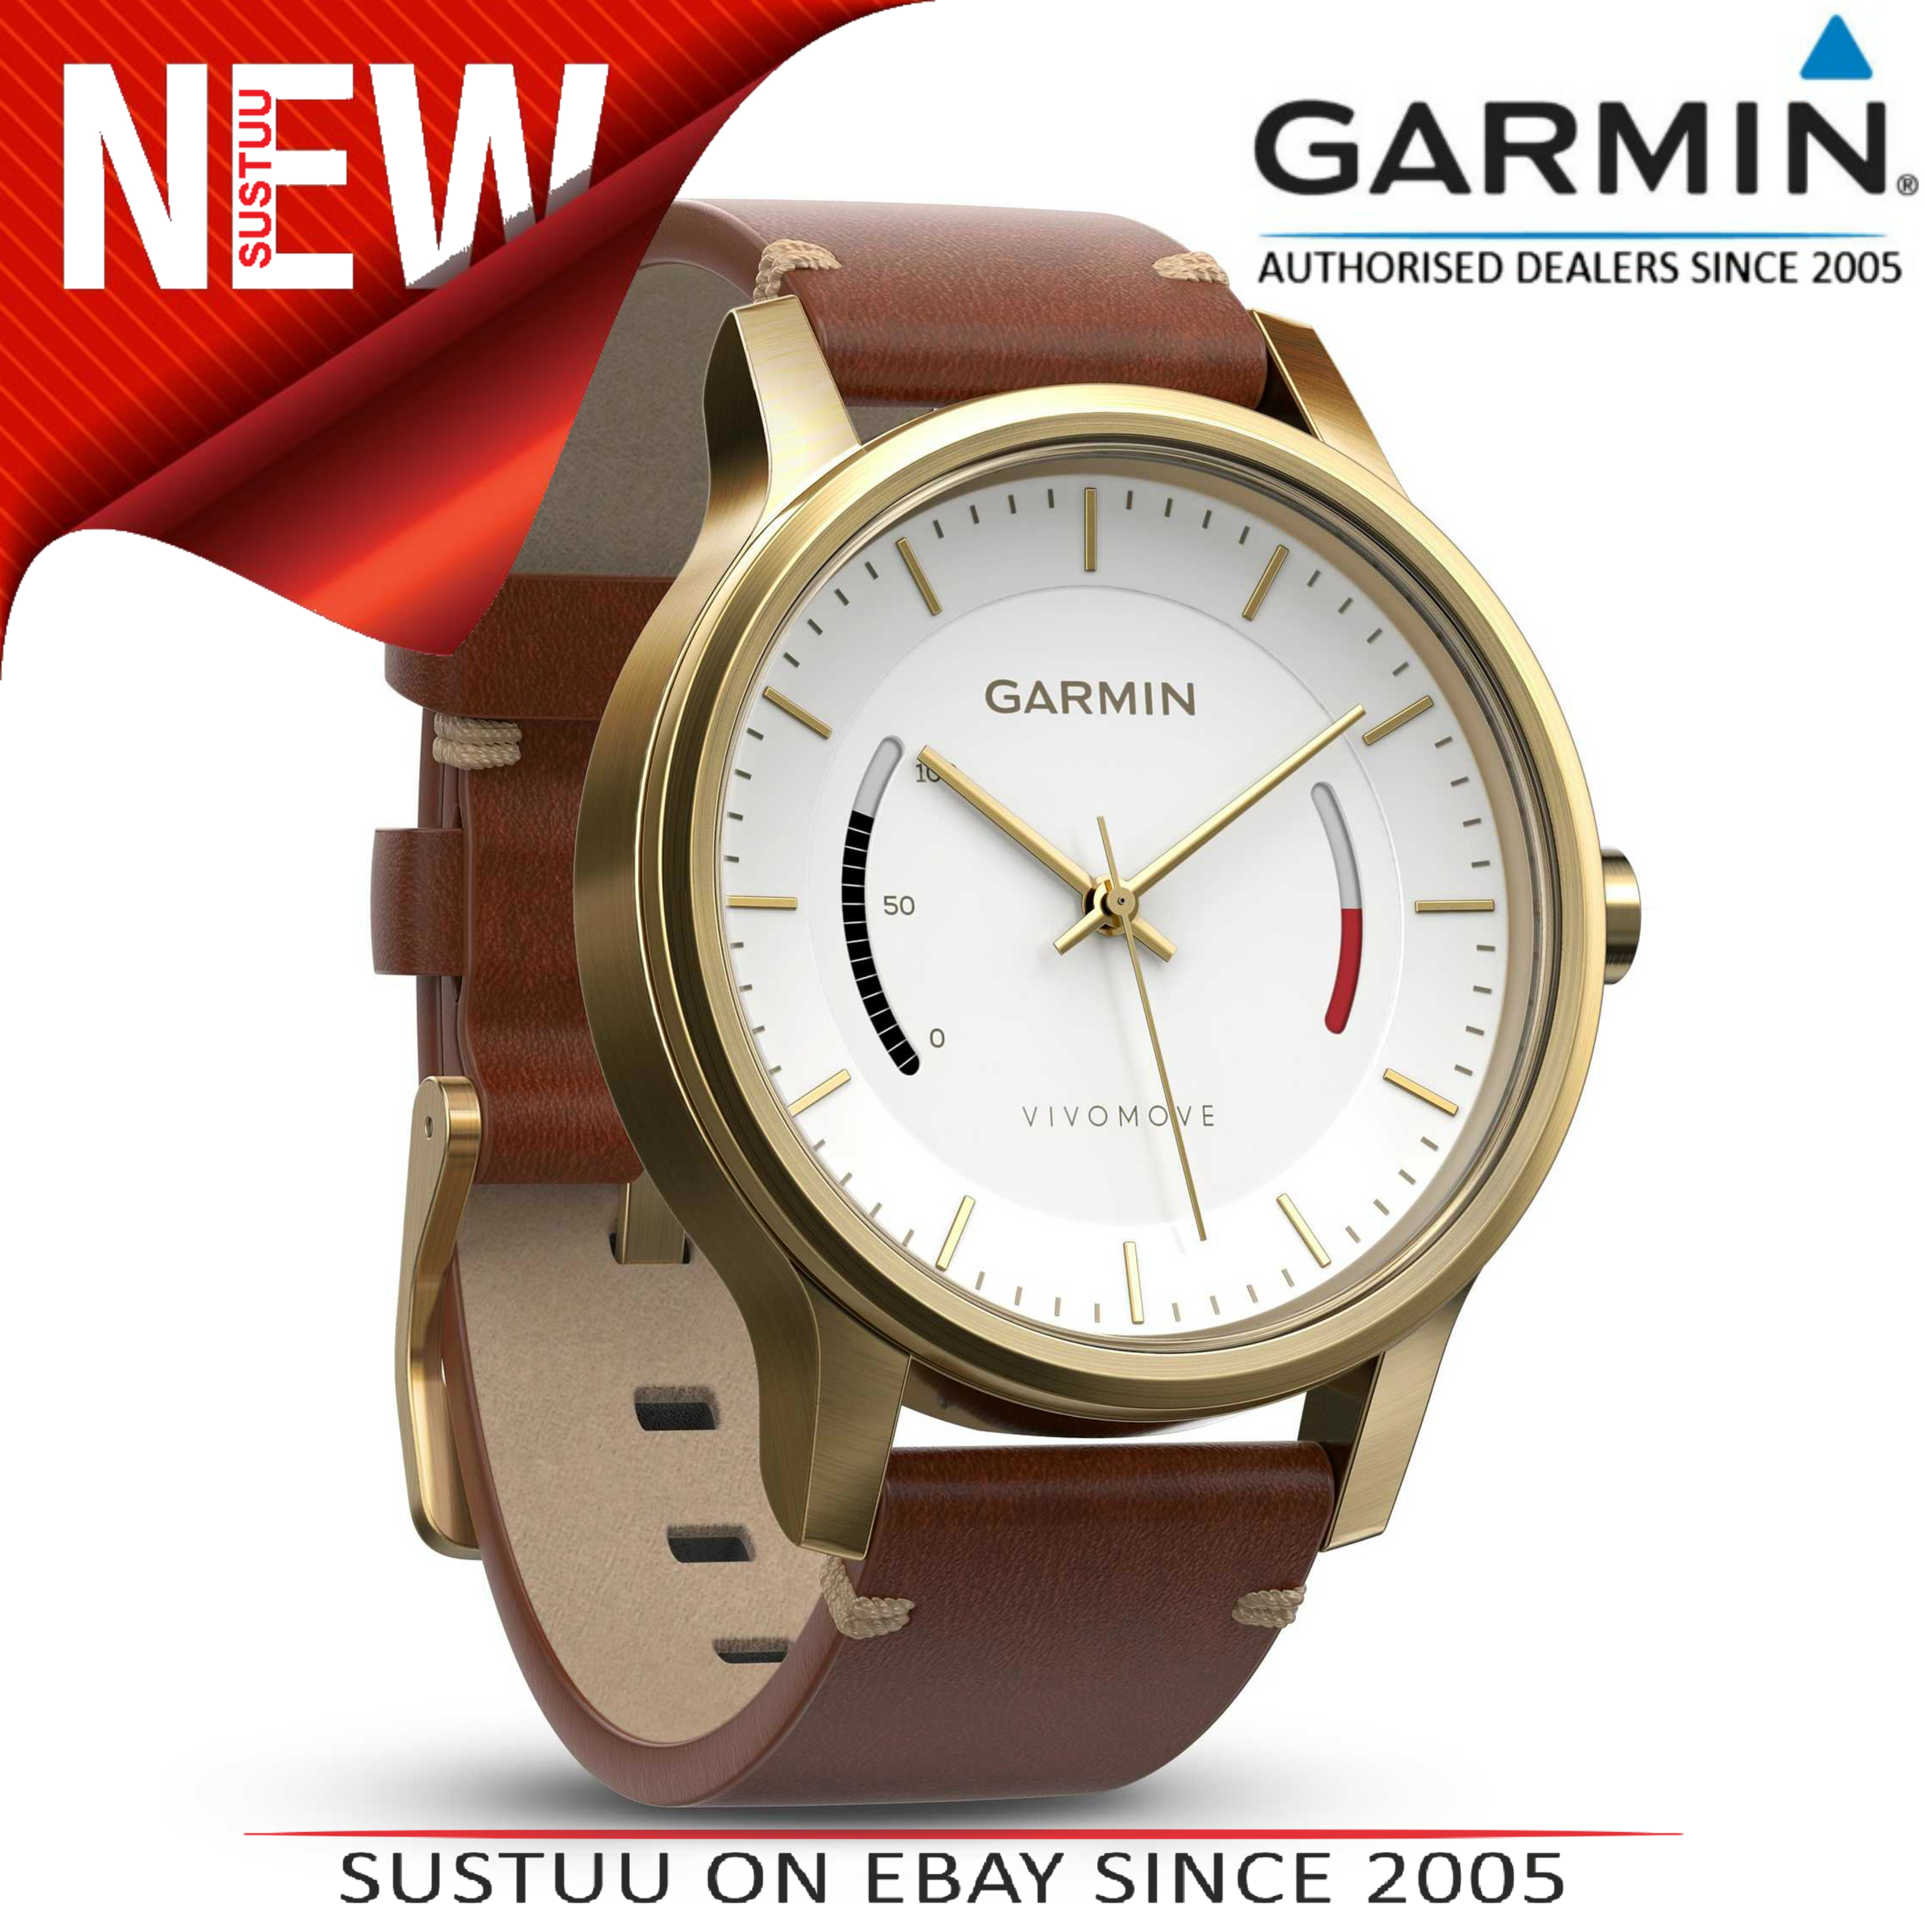 Garmin Vivomove|Analog Smart Watch|Activity Tracker|Sleep Monitor|Brown Leather+ Gold